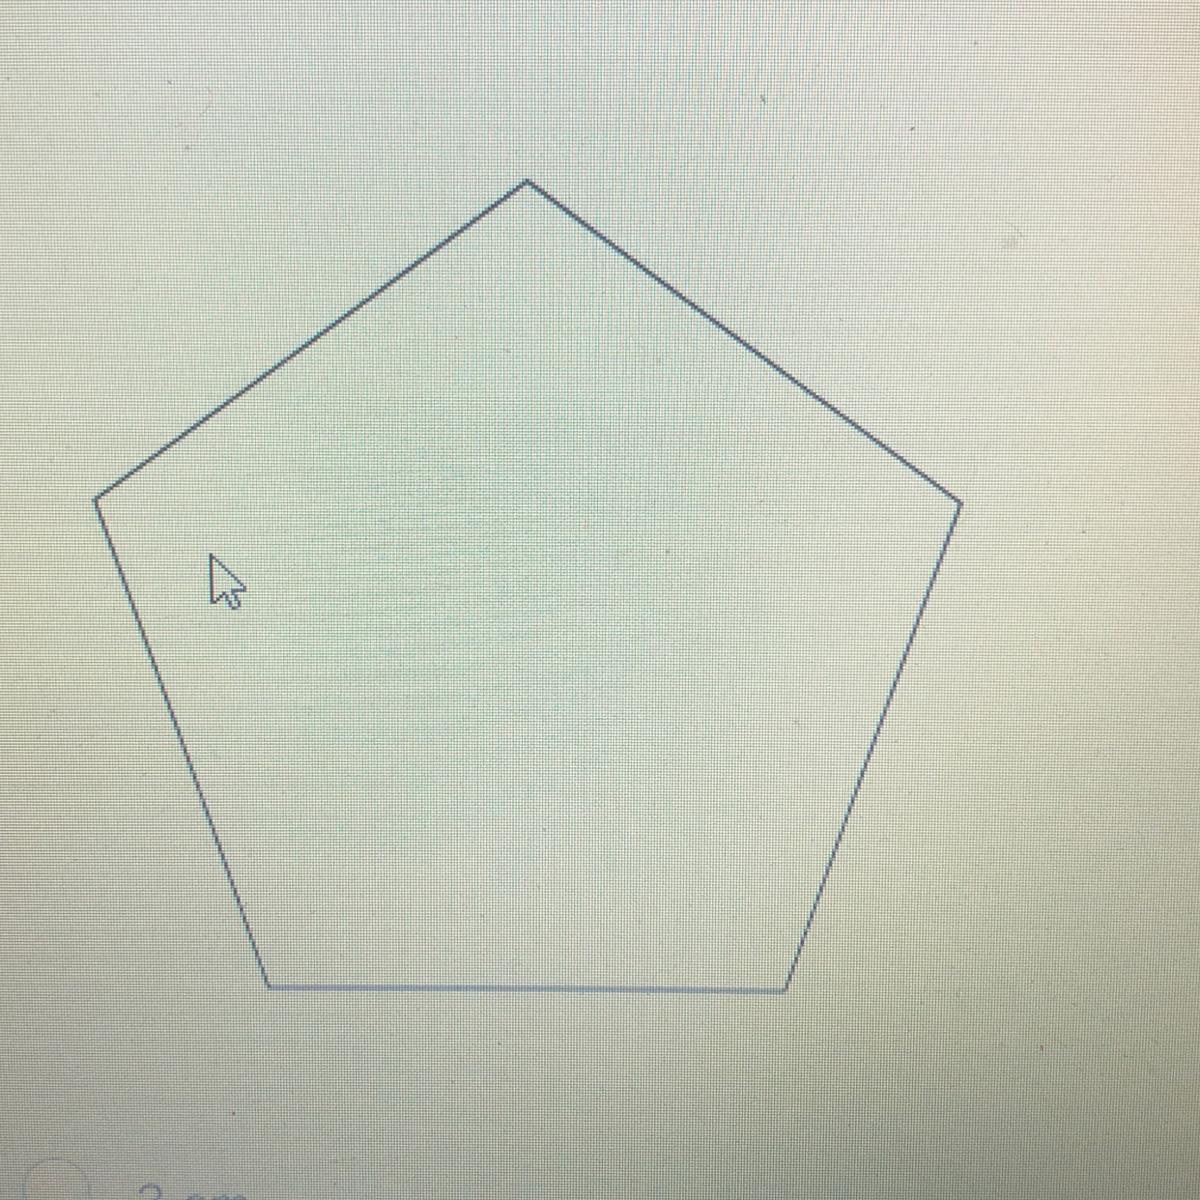 The Perimeter Of The Regular Polygon Shown Is 18 Cm What